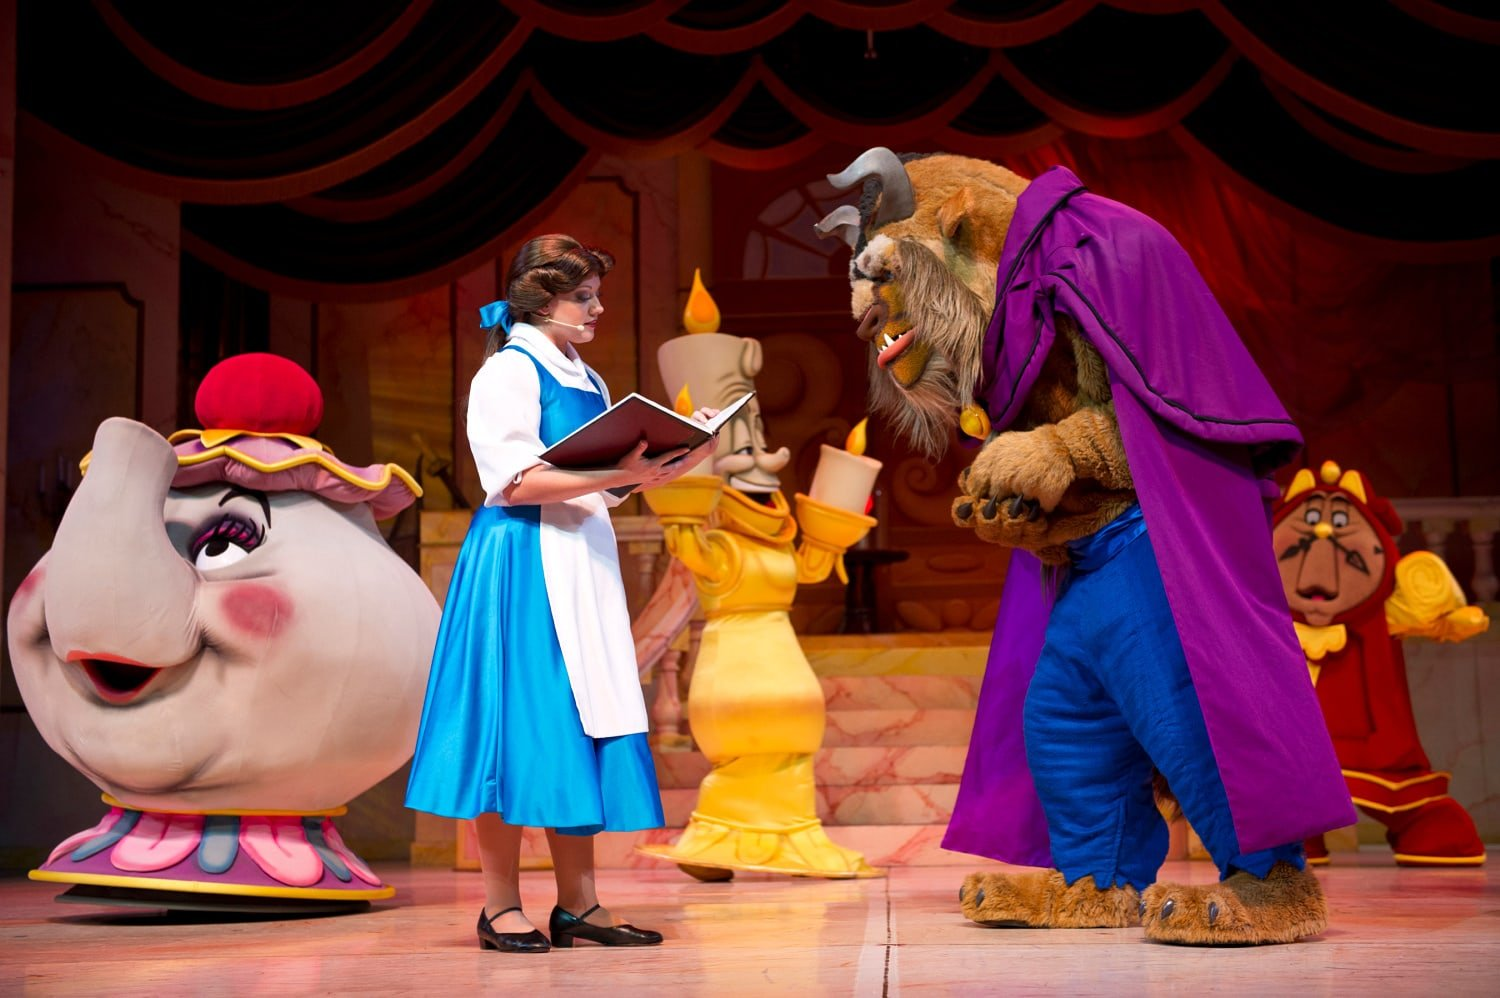 Beauty and the Beast - Live on Stage at Disney Hollywood Studios with Toddlers